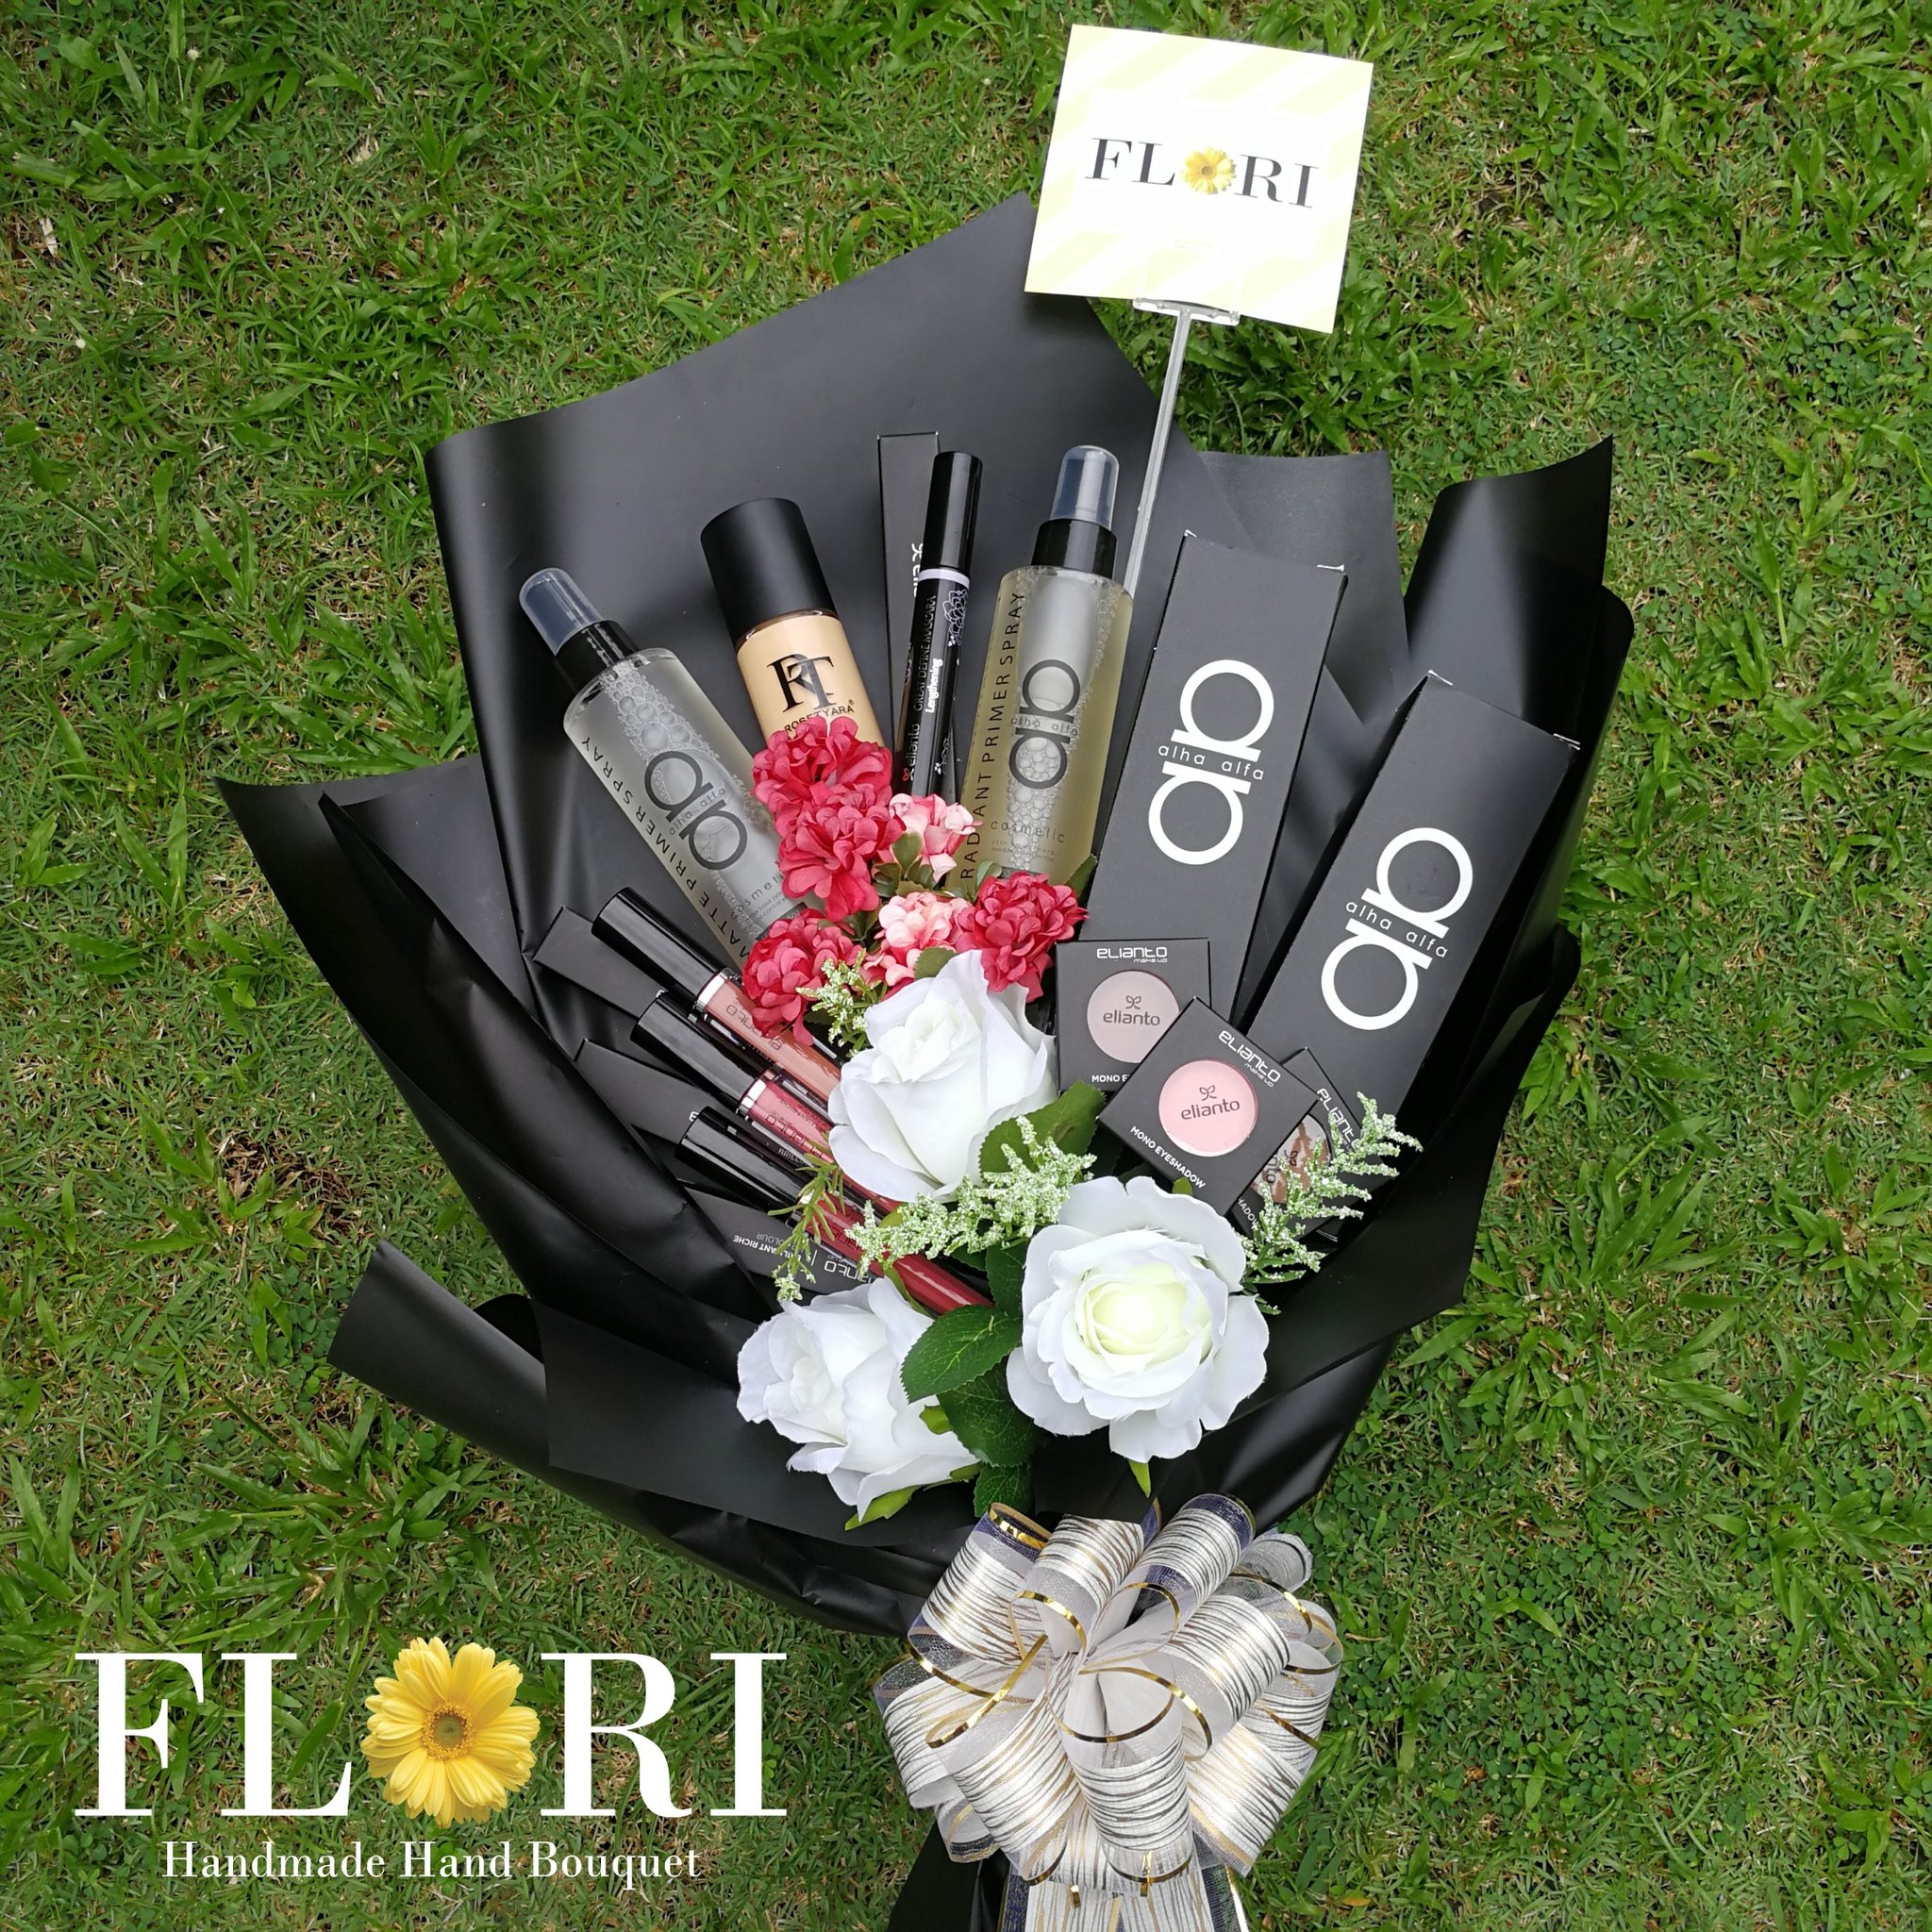 Duchess Darla On Twitter Makeup Bouquet By Flori Malaysia All Items Are Authentic Original Fake Products Makeupbouquetkl Makeupbouquet Ig Fb Flori Malaysia Https T Co Nncqxzmosq